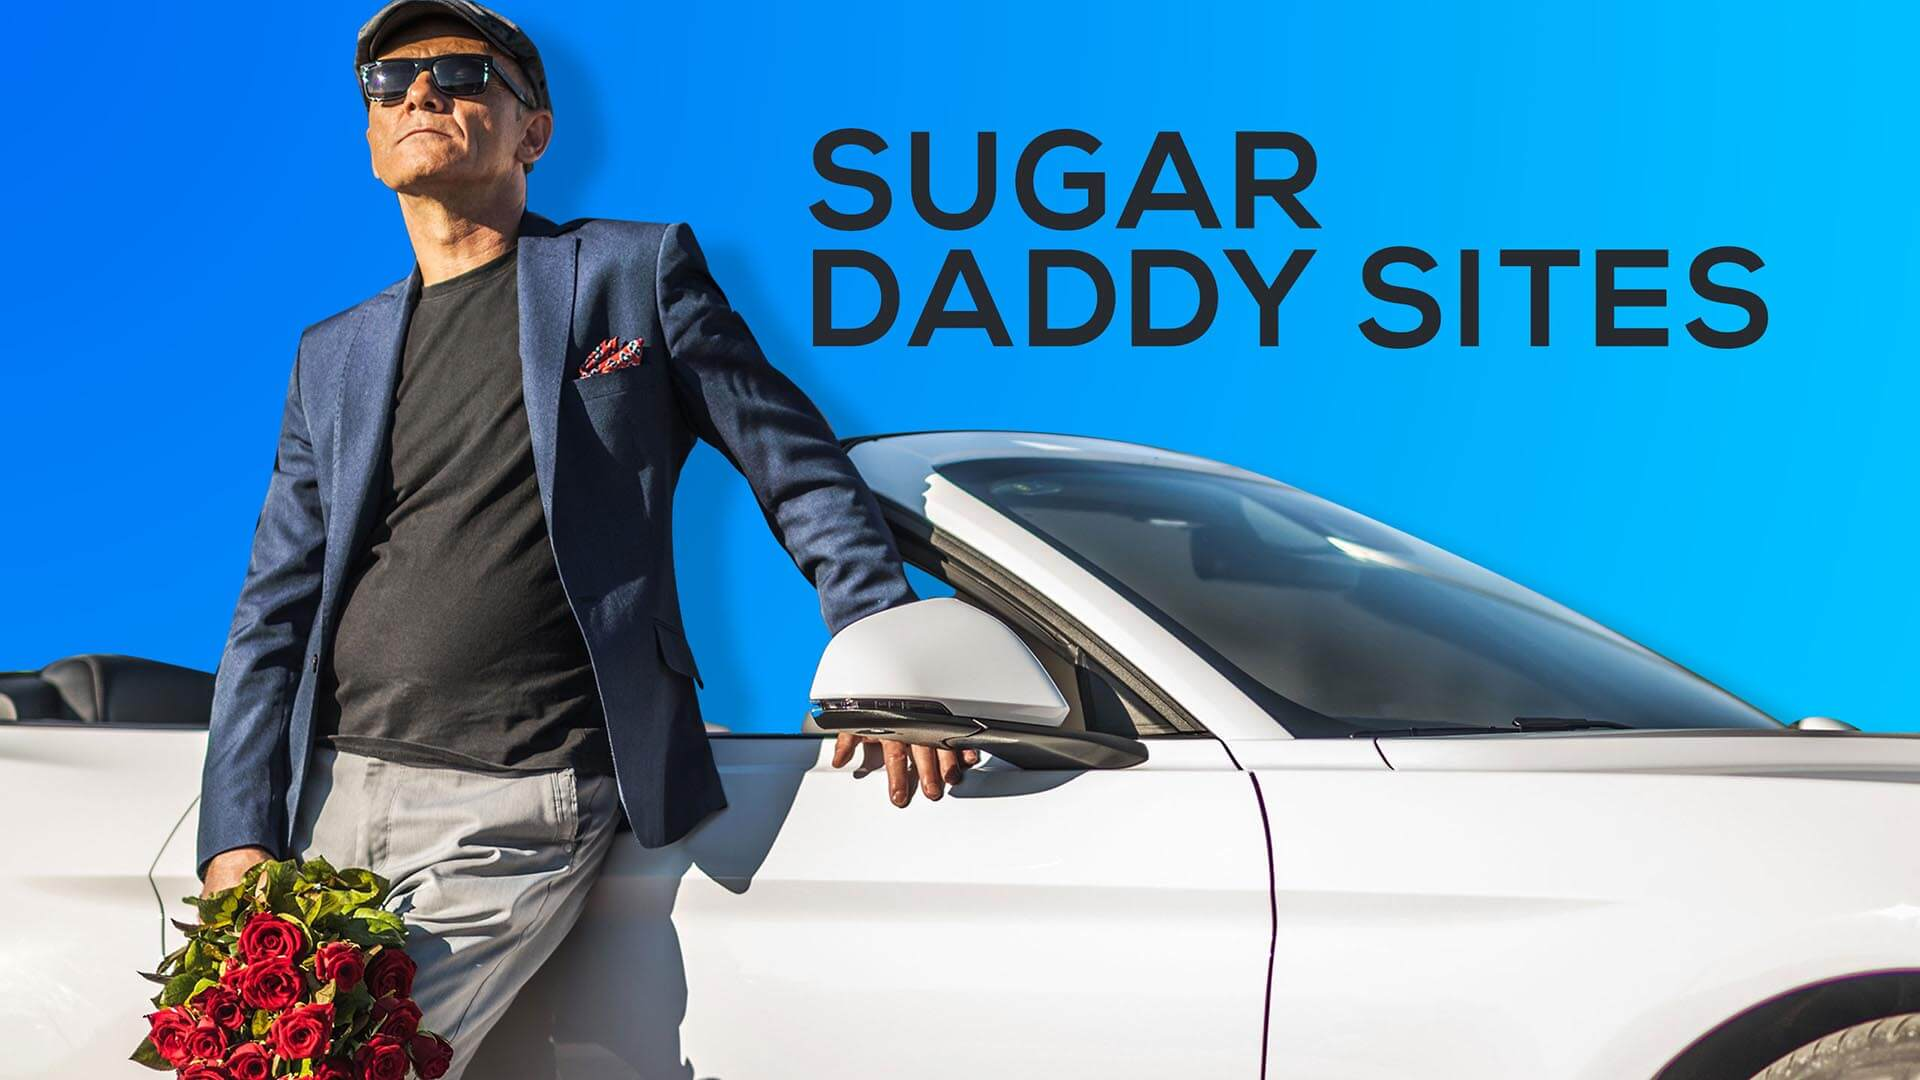 Sugar Daddy Sites